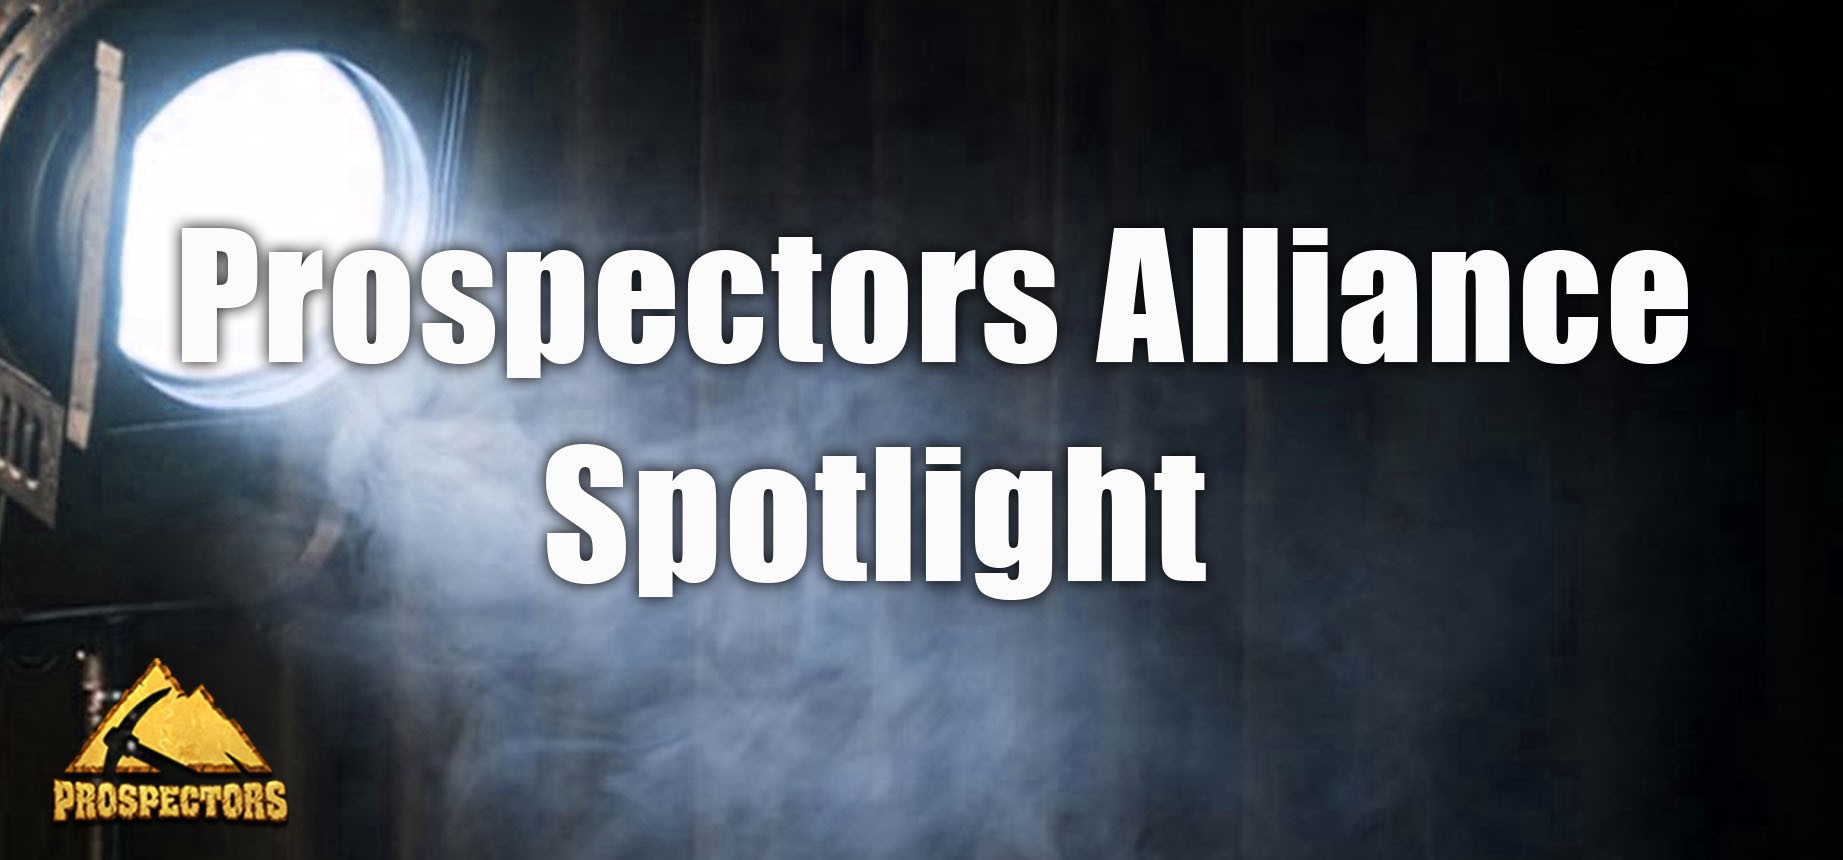 Prospectors Alliance spotlight: 24 Karat